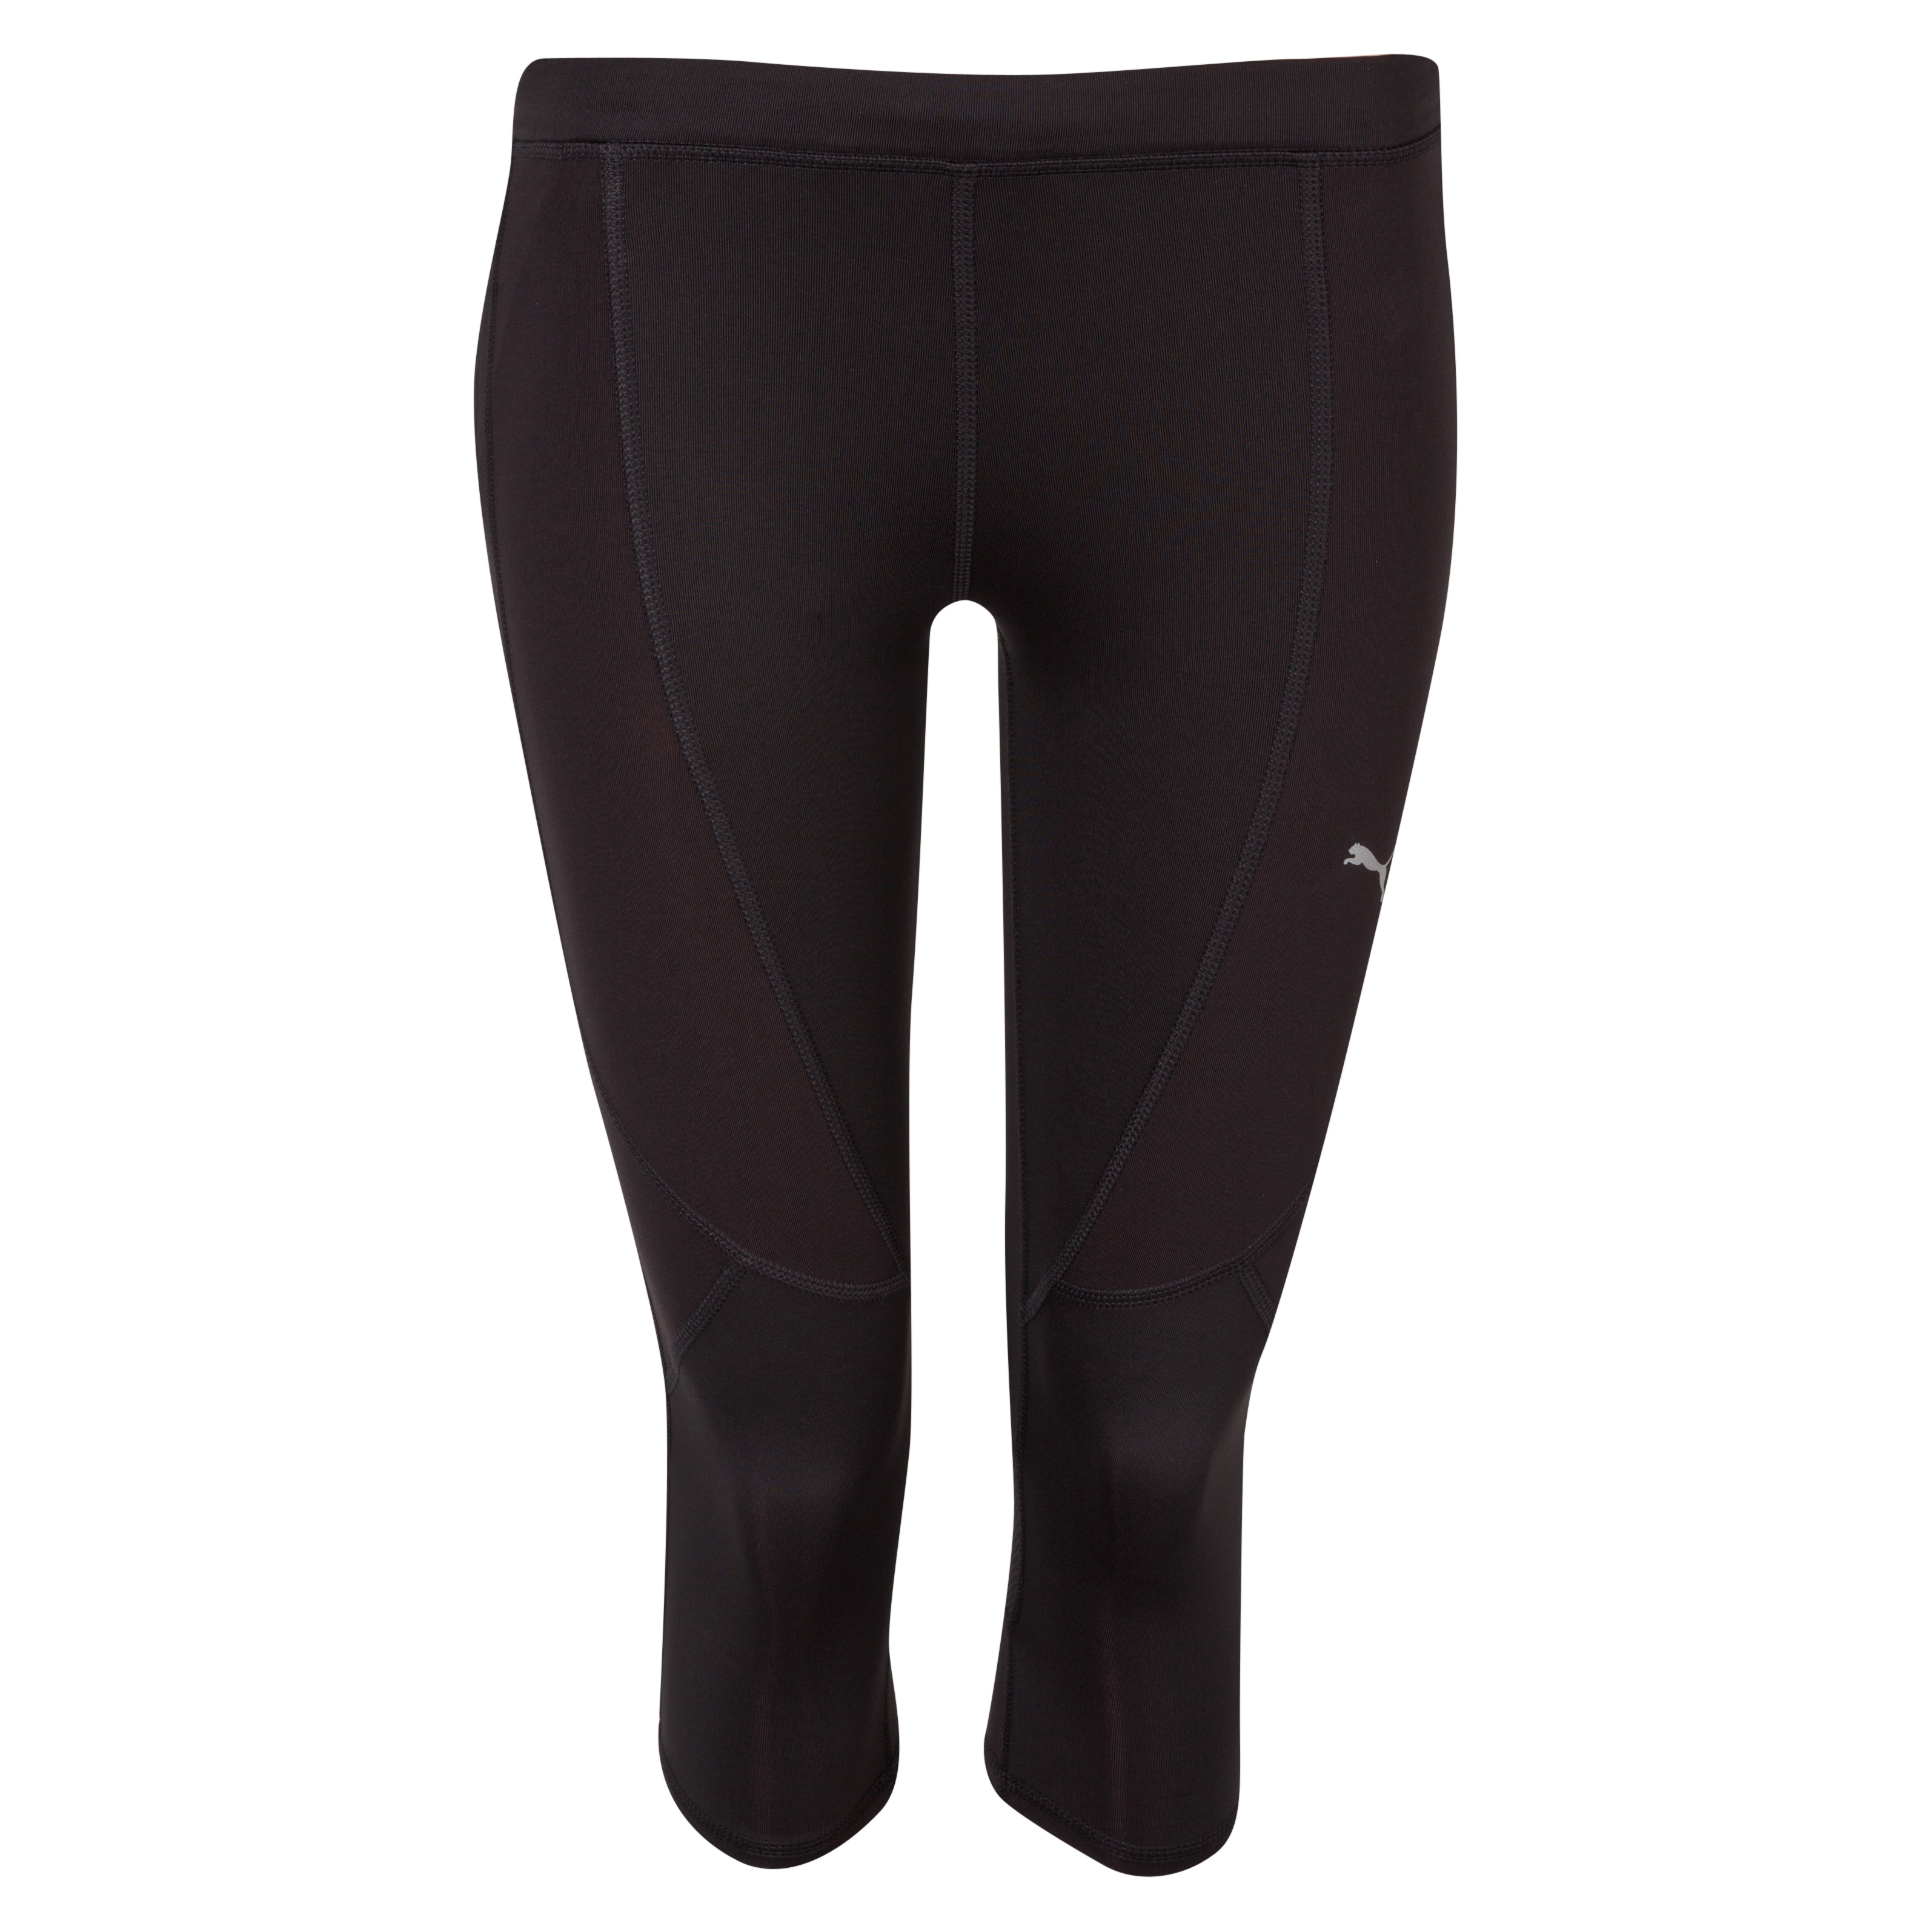 Puma Complete Running 3/4 Capri Tight - Black - Womens